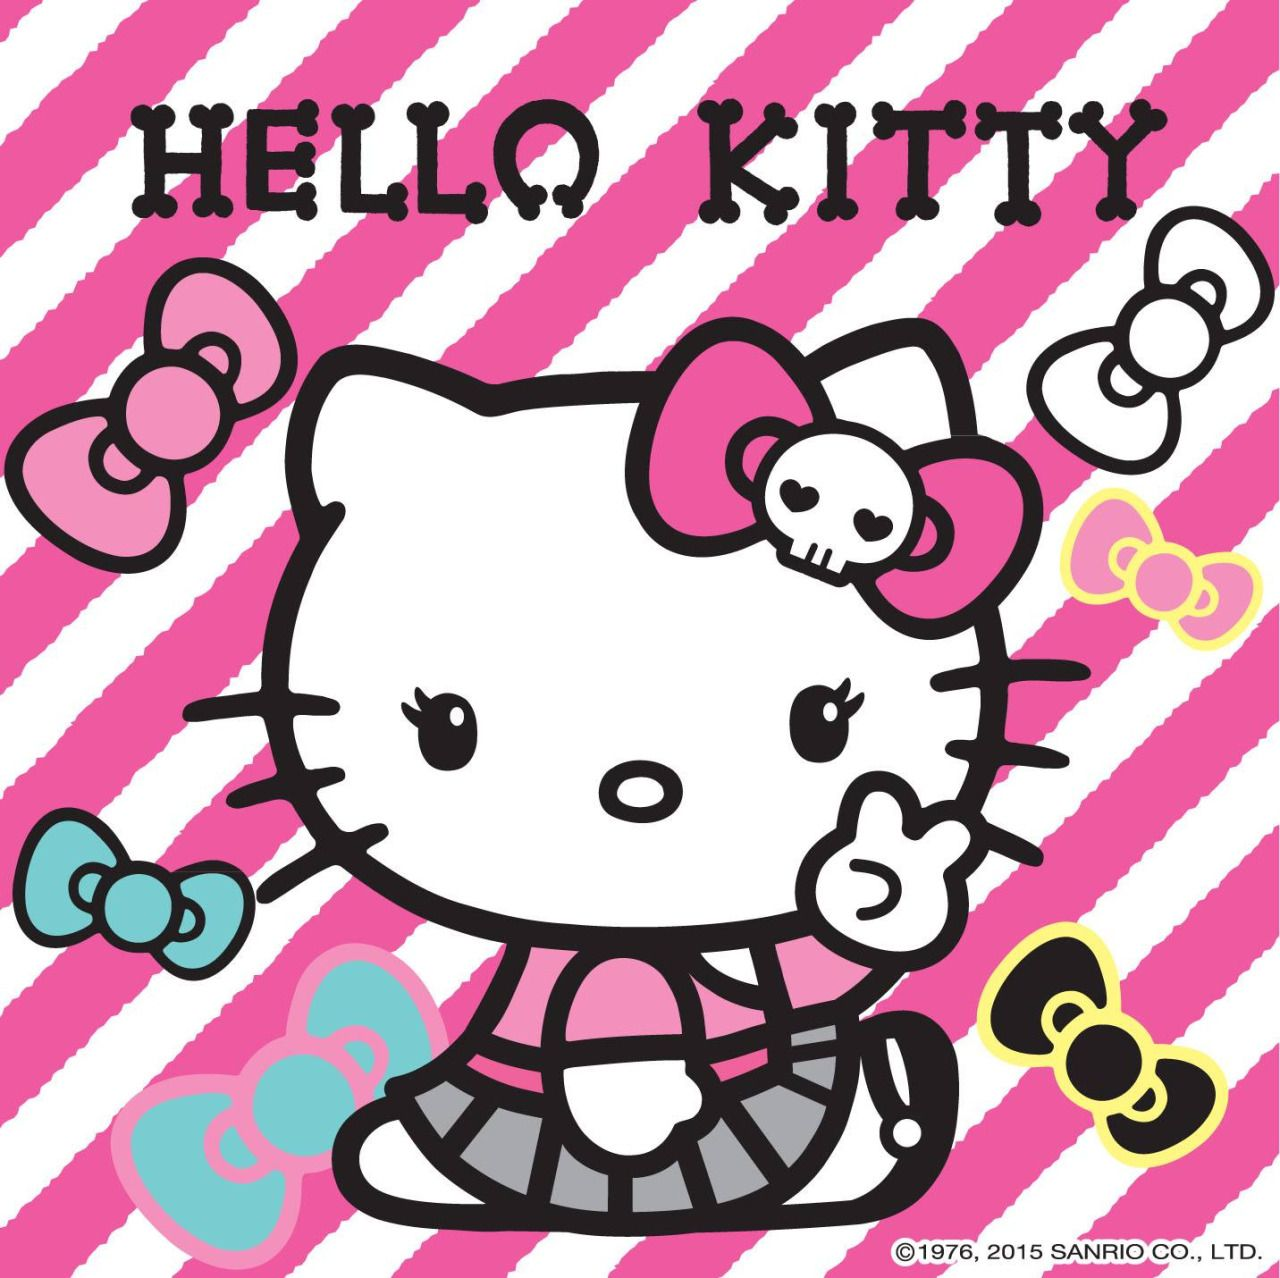 Simple Wallpaper Hello Kitty Strawberry - f2722cbbbdd0c165cad95c13235bb8d8  You Should Have_756135.jpg